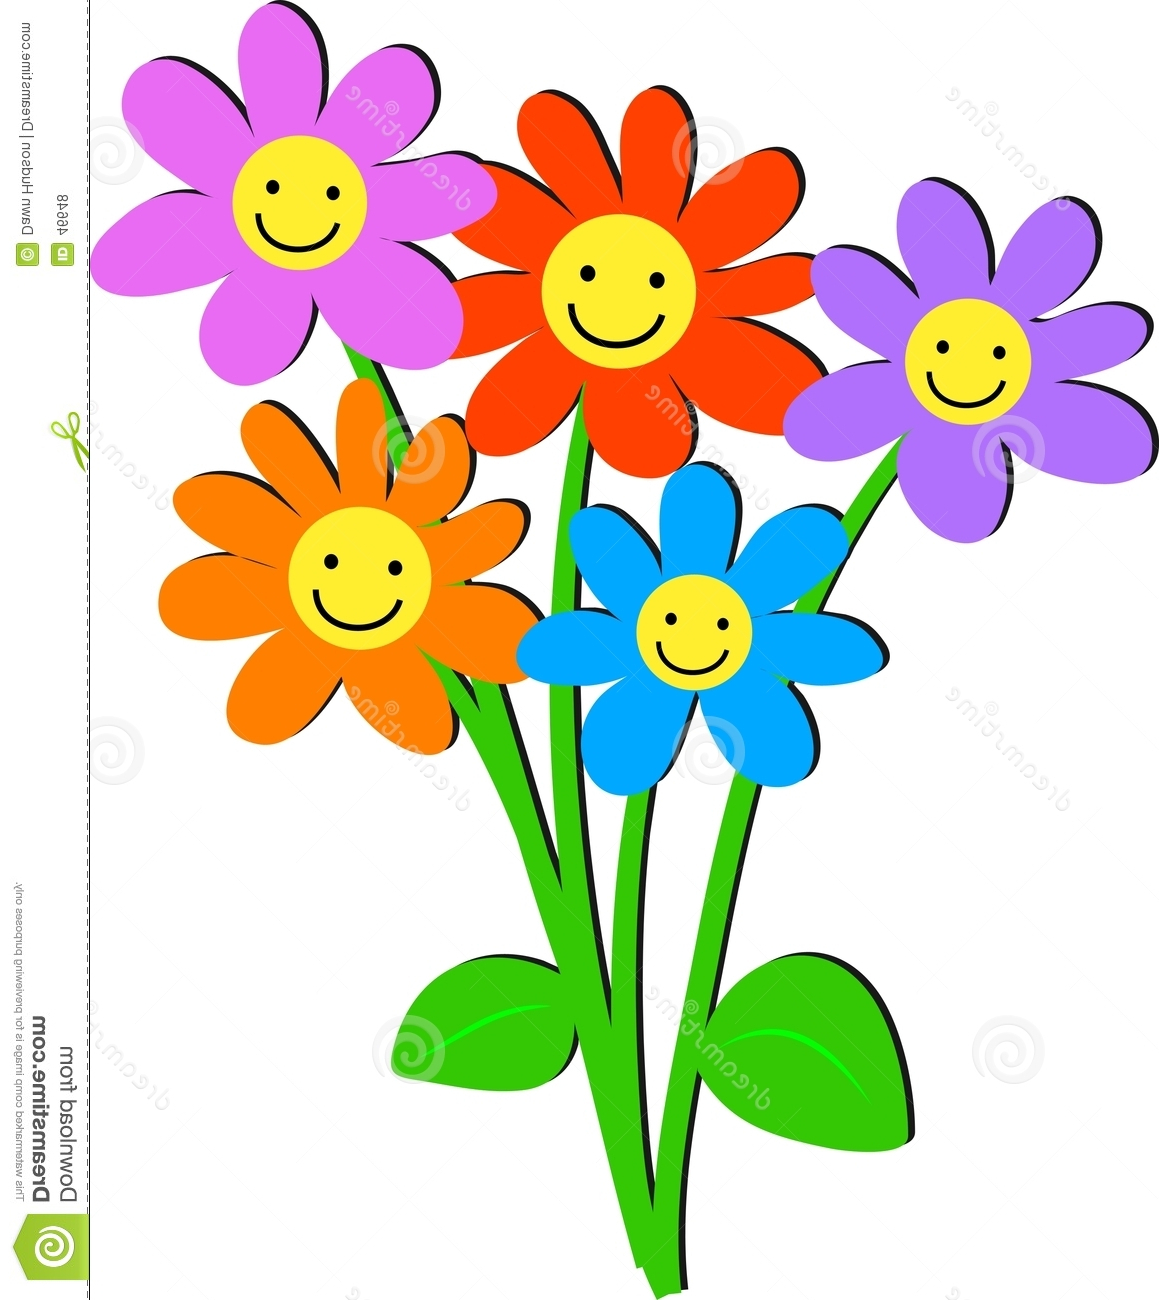 1159x1300 Cartoon Flowers With Faces